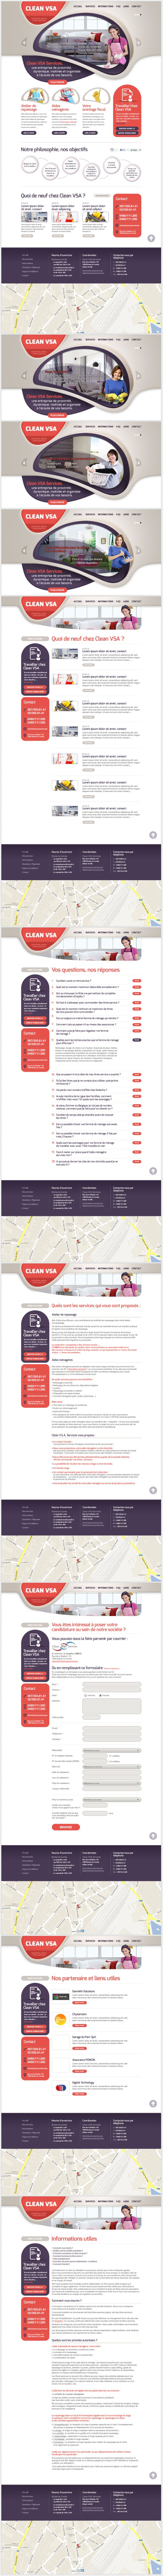 Clean VSA Services website #graphicdesign #webdesign #design #website #layout #newsletter #responsive #foundation #wordpress